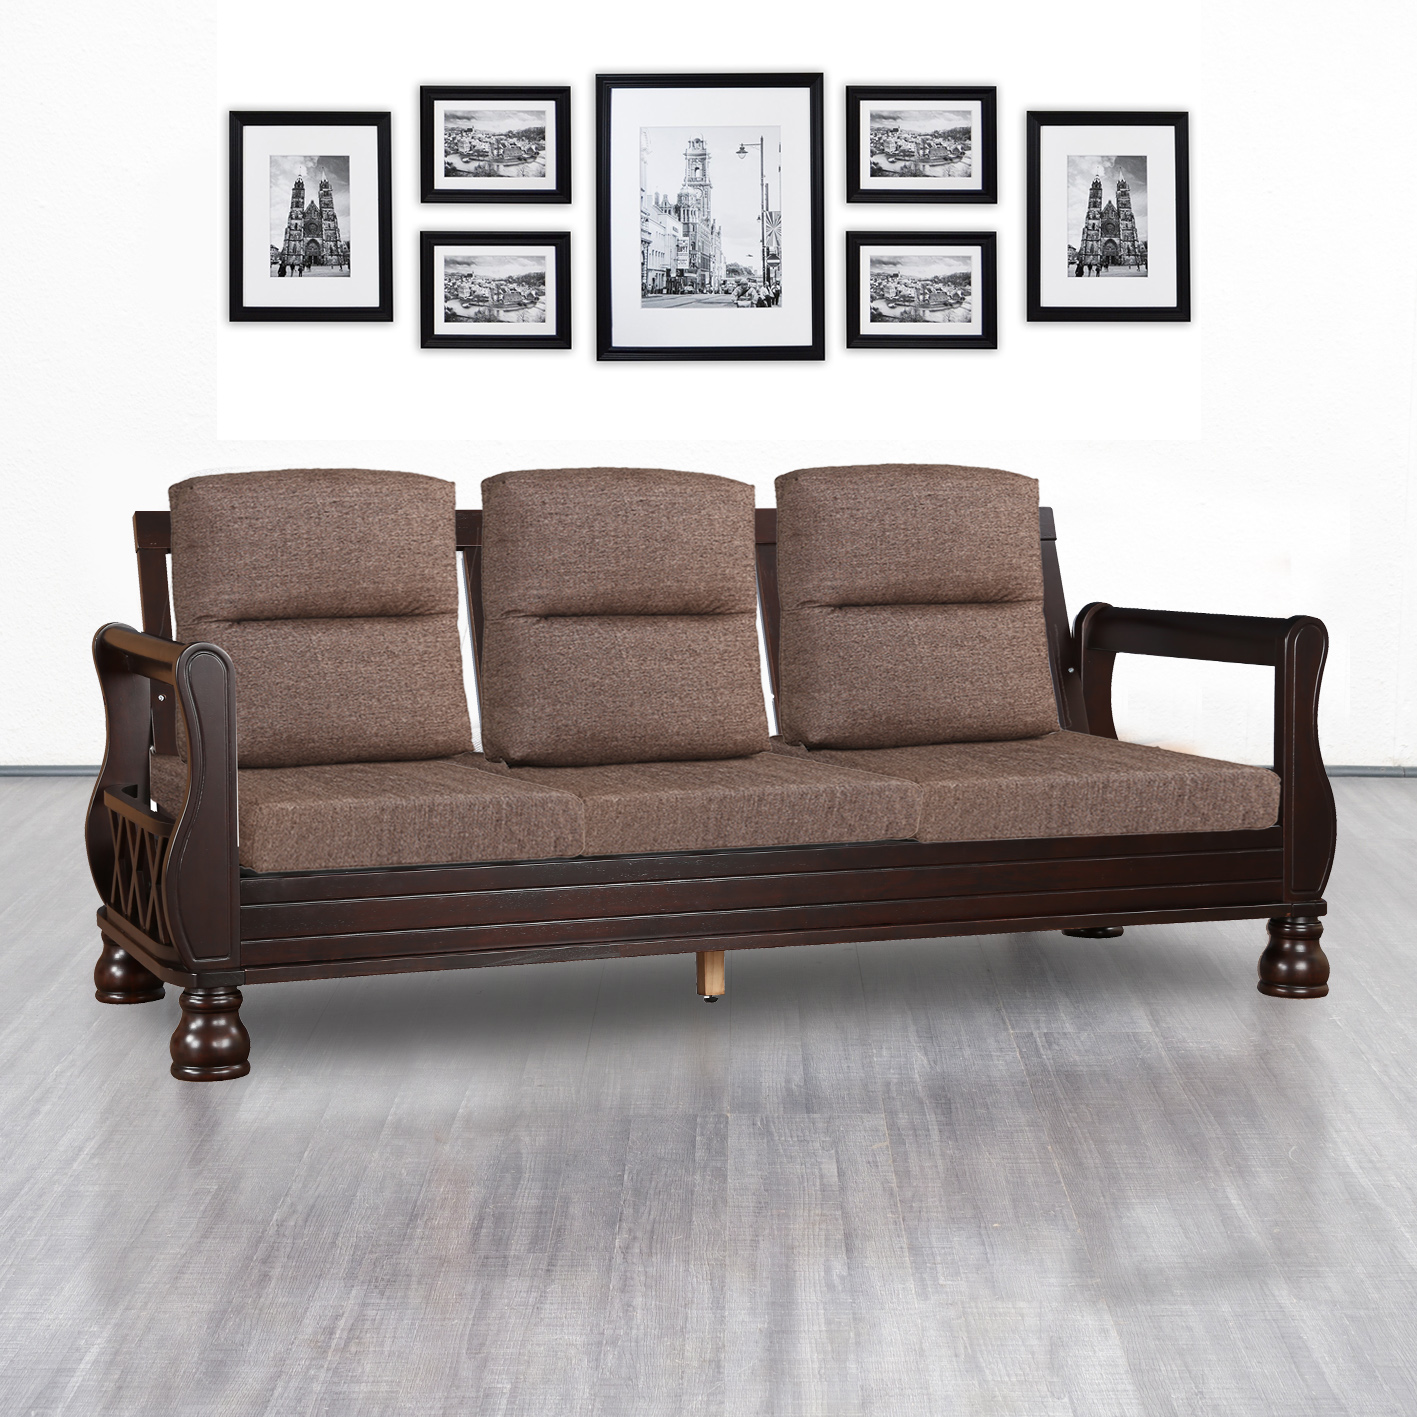 Clyde Solid Wood Three Seater Sofa With Cushion in Dark Cappuccino Colour by HomeTown